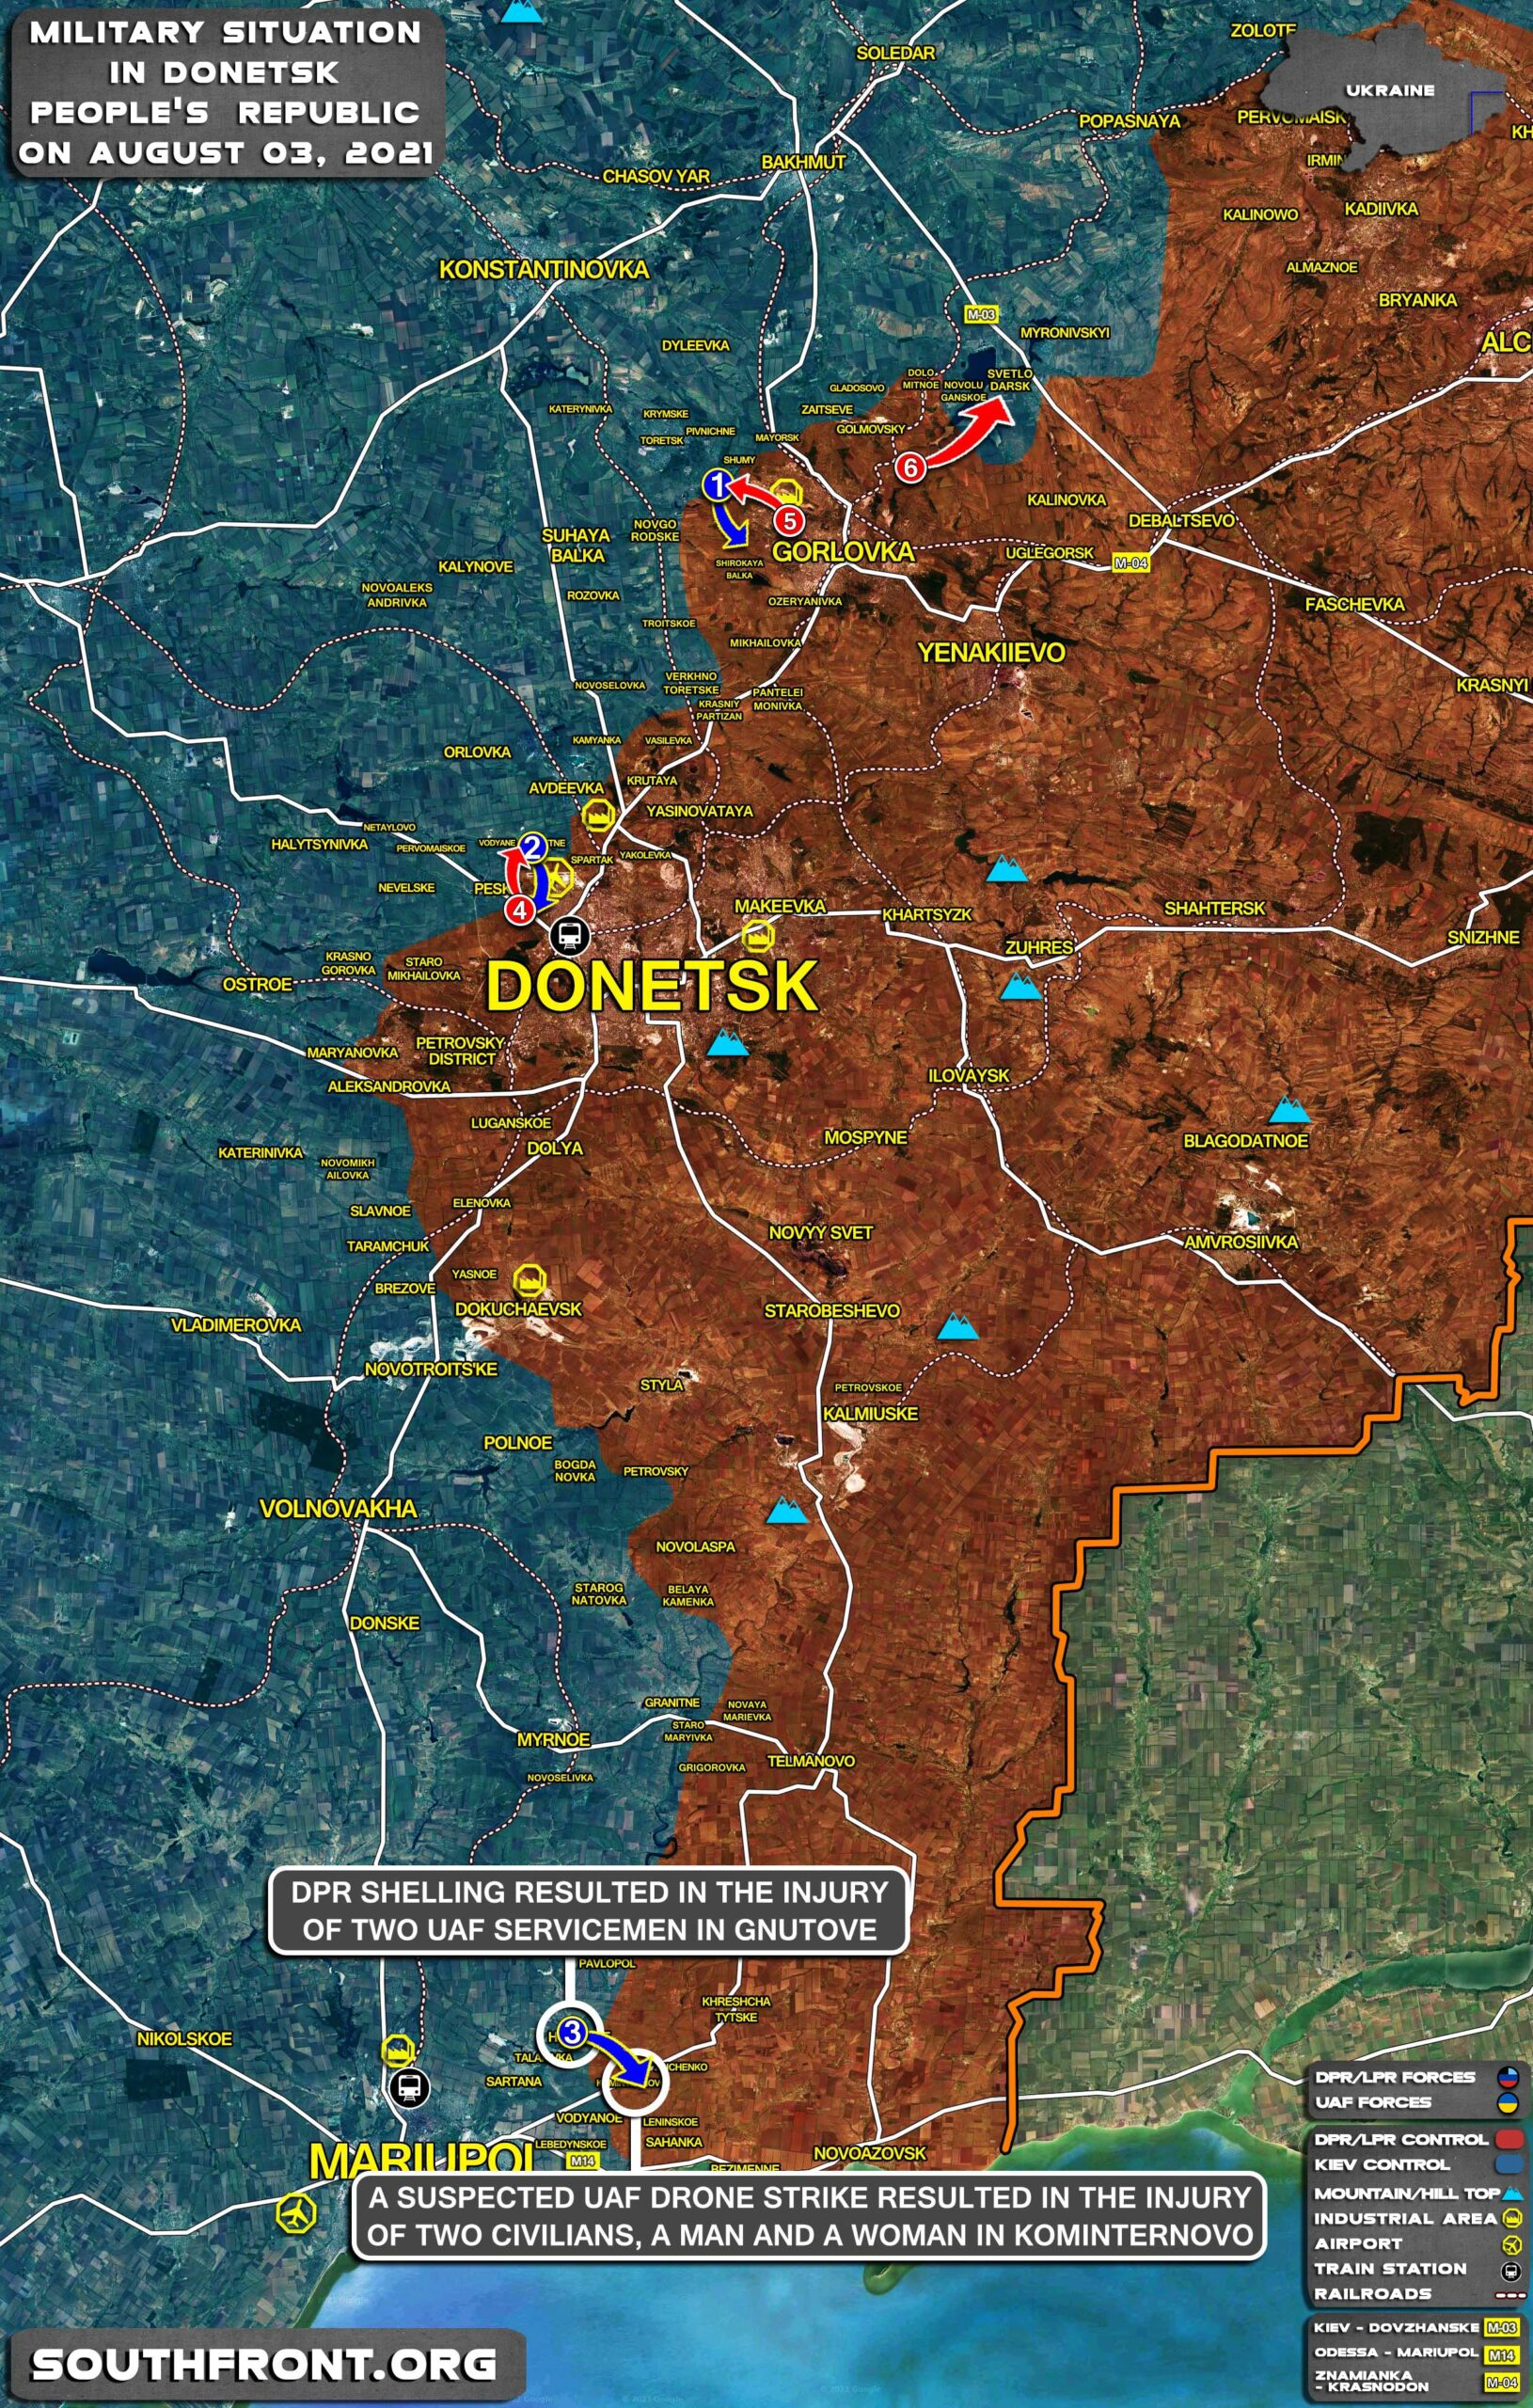 Military Situation In Donetsk People's Republic On August 3, 2021 (Map Update)